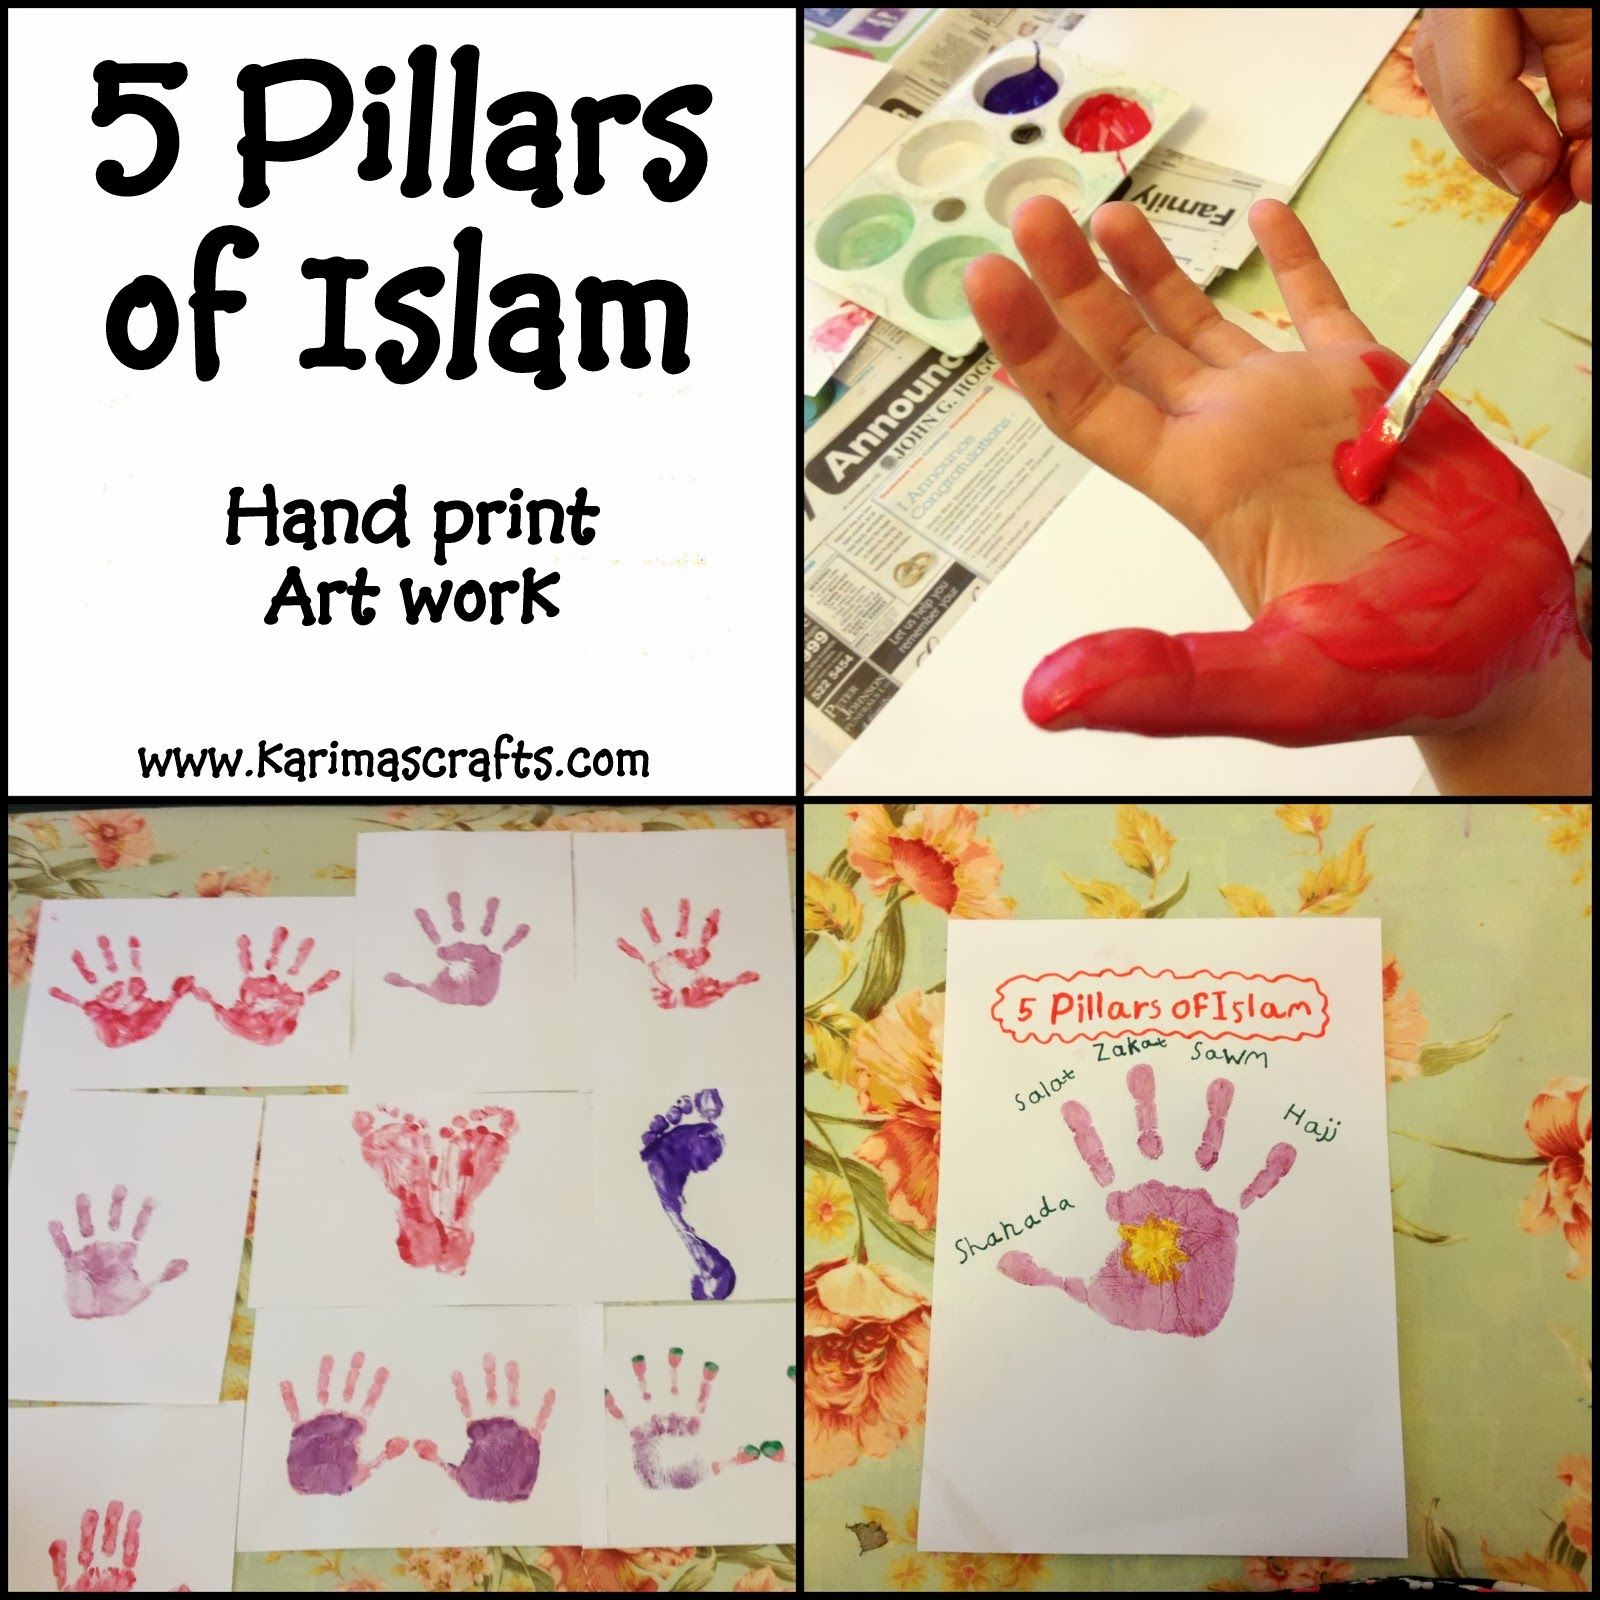 worksheet Five Pillars Of Islam Worksheet 10 best images about islam on pinterest prayer times the five and calendar